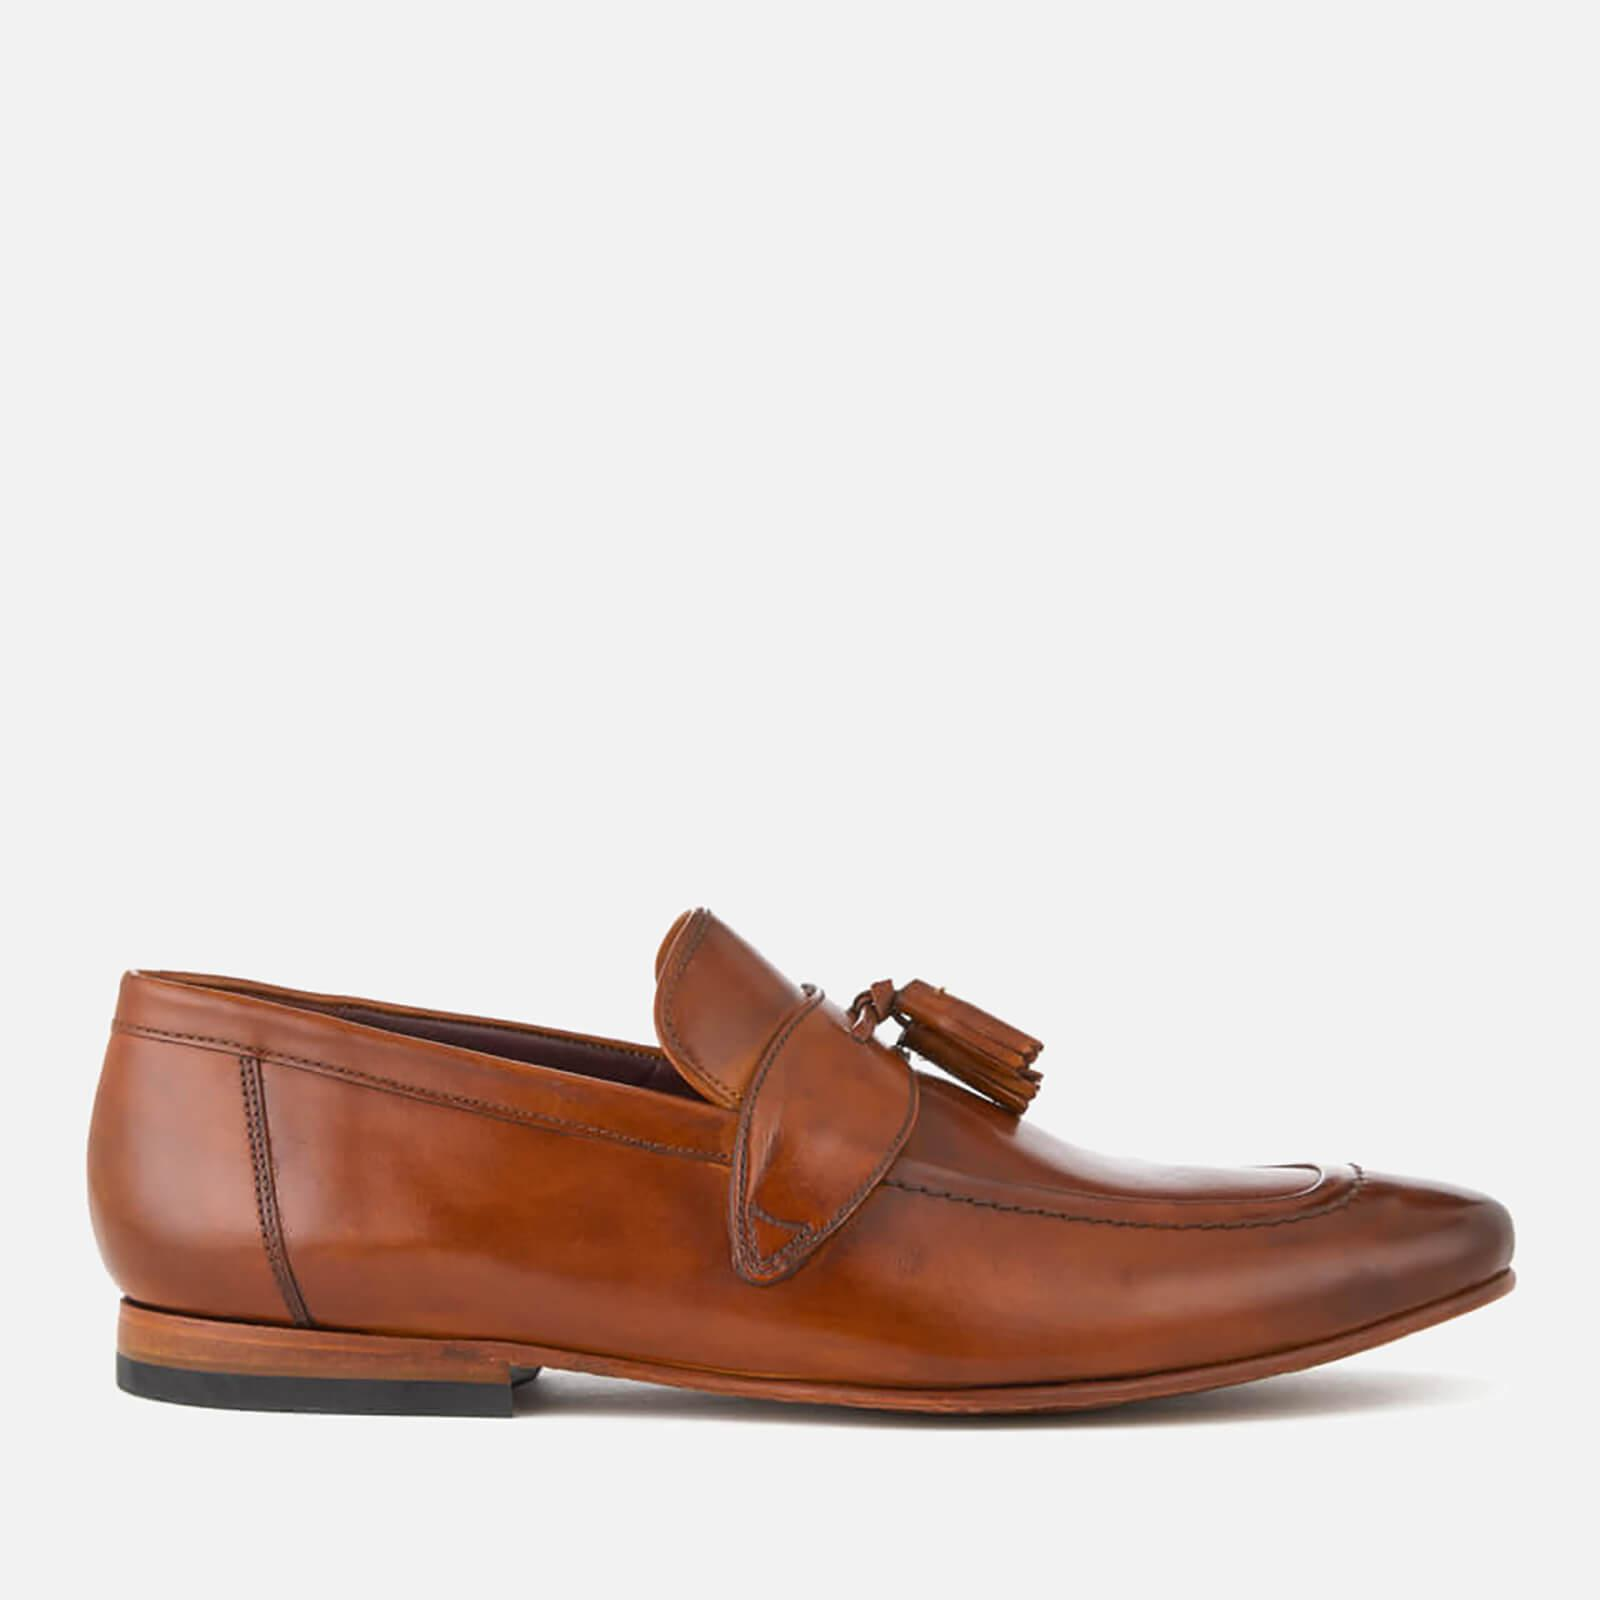 Mens Ted Baker Shoes John Lewis